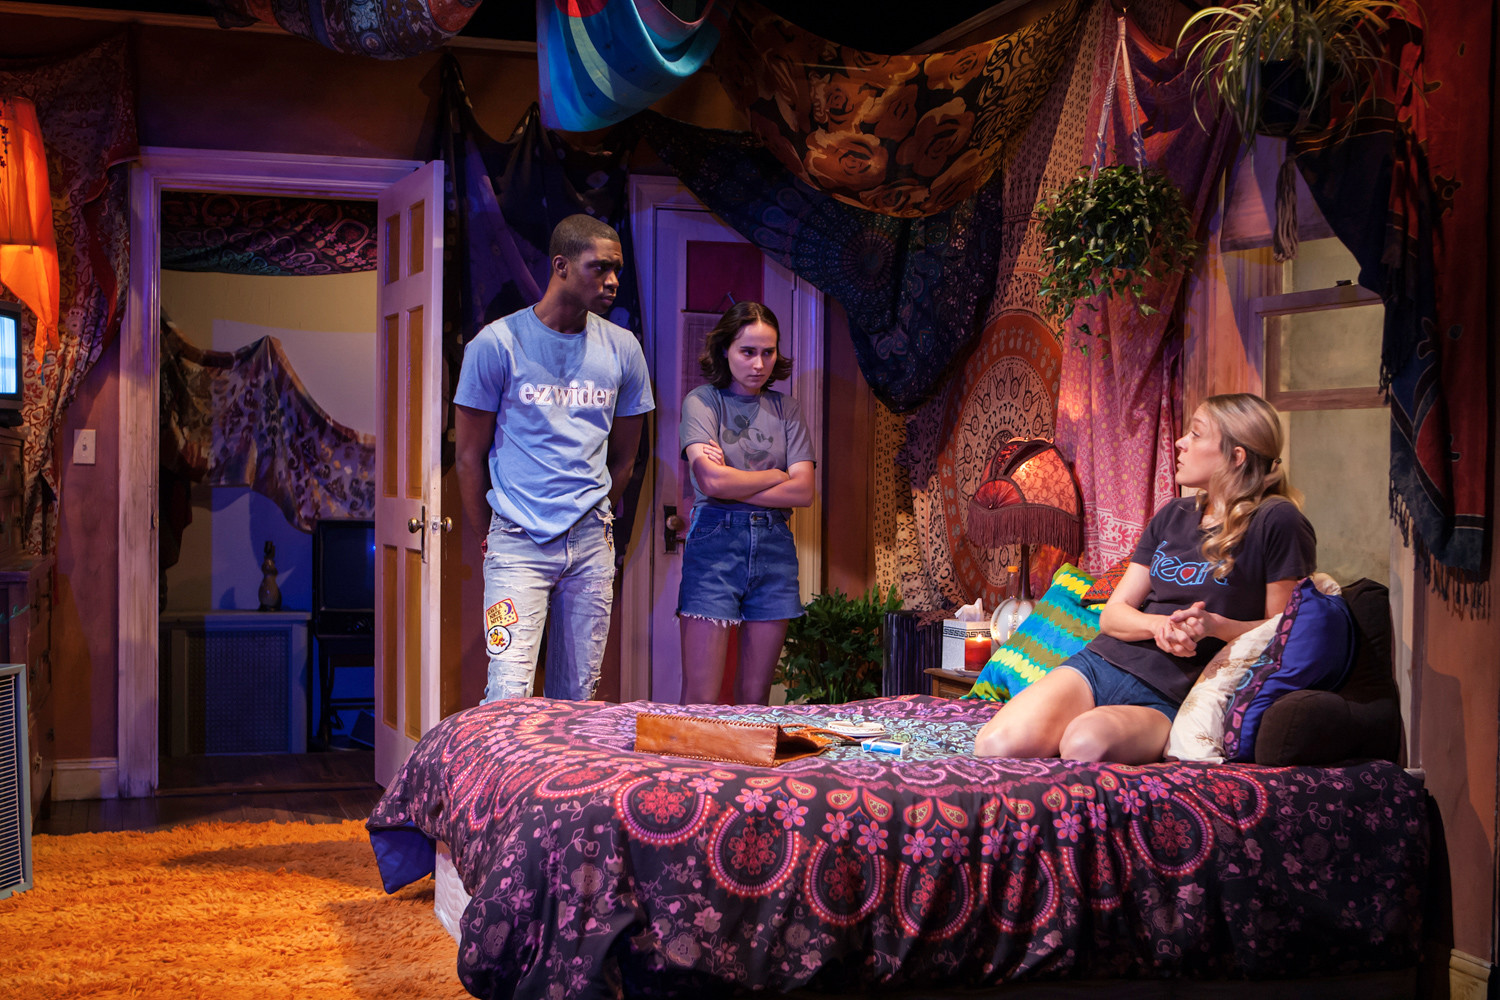 Moise Morancy, left, Sadie Scott and Chloe-Sevigny appear in 'Downtown Race Riot' Off-Broadway at the Pershing Square Signature Center, 480 W 42nd St.